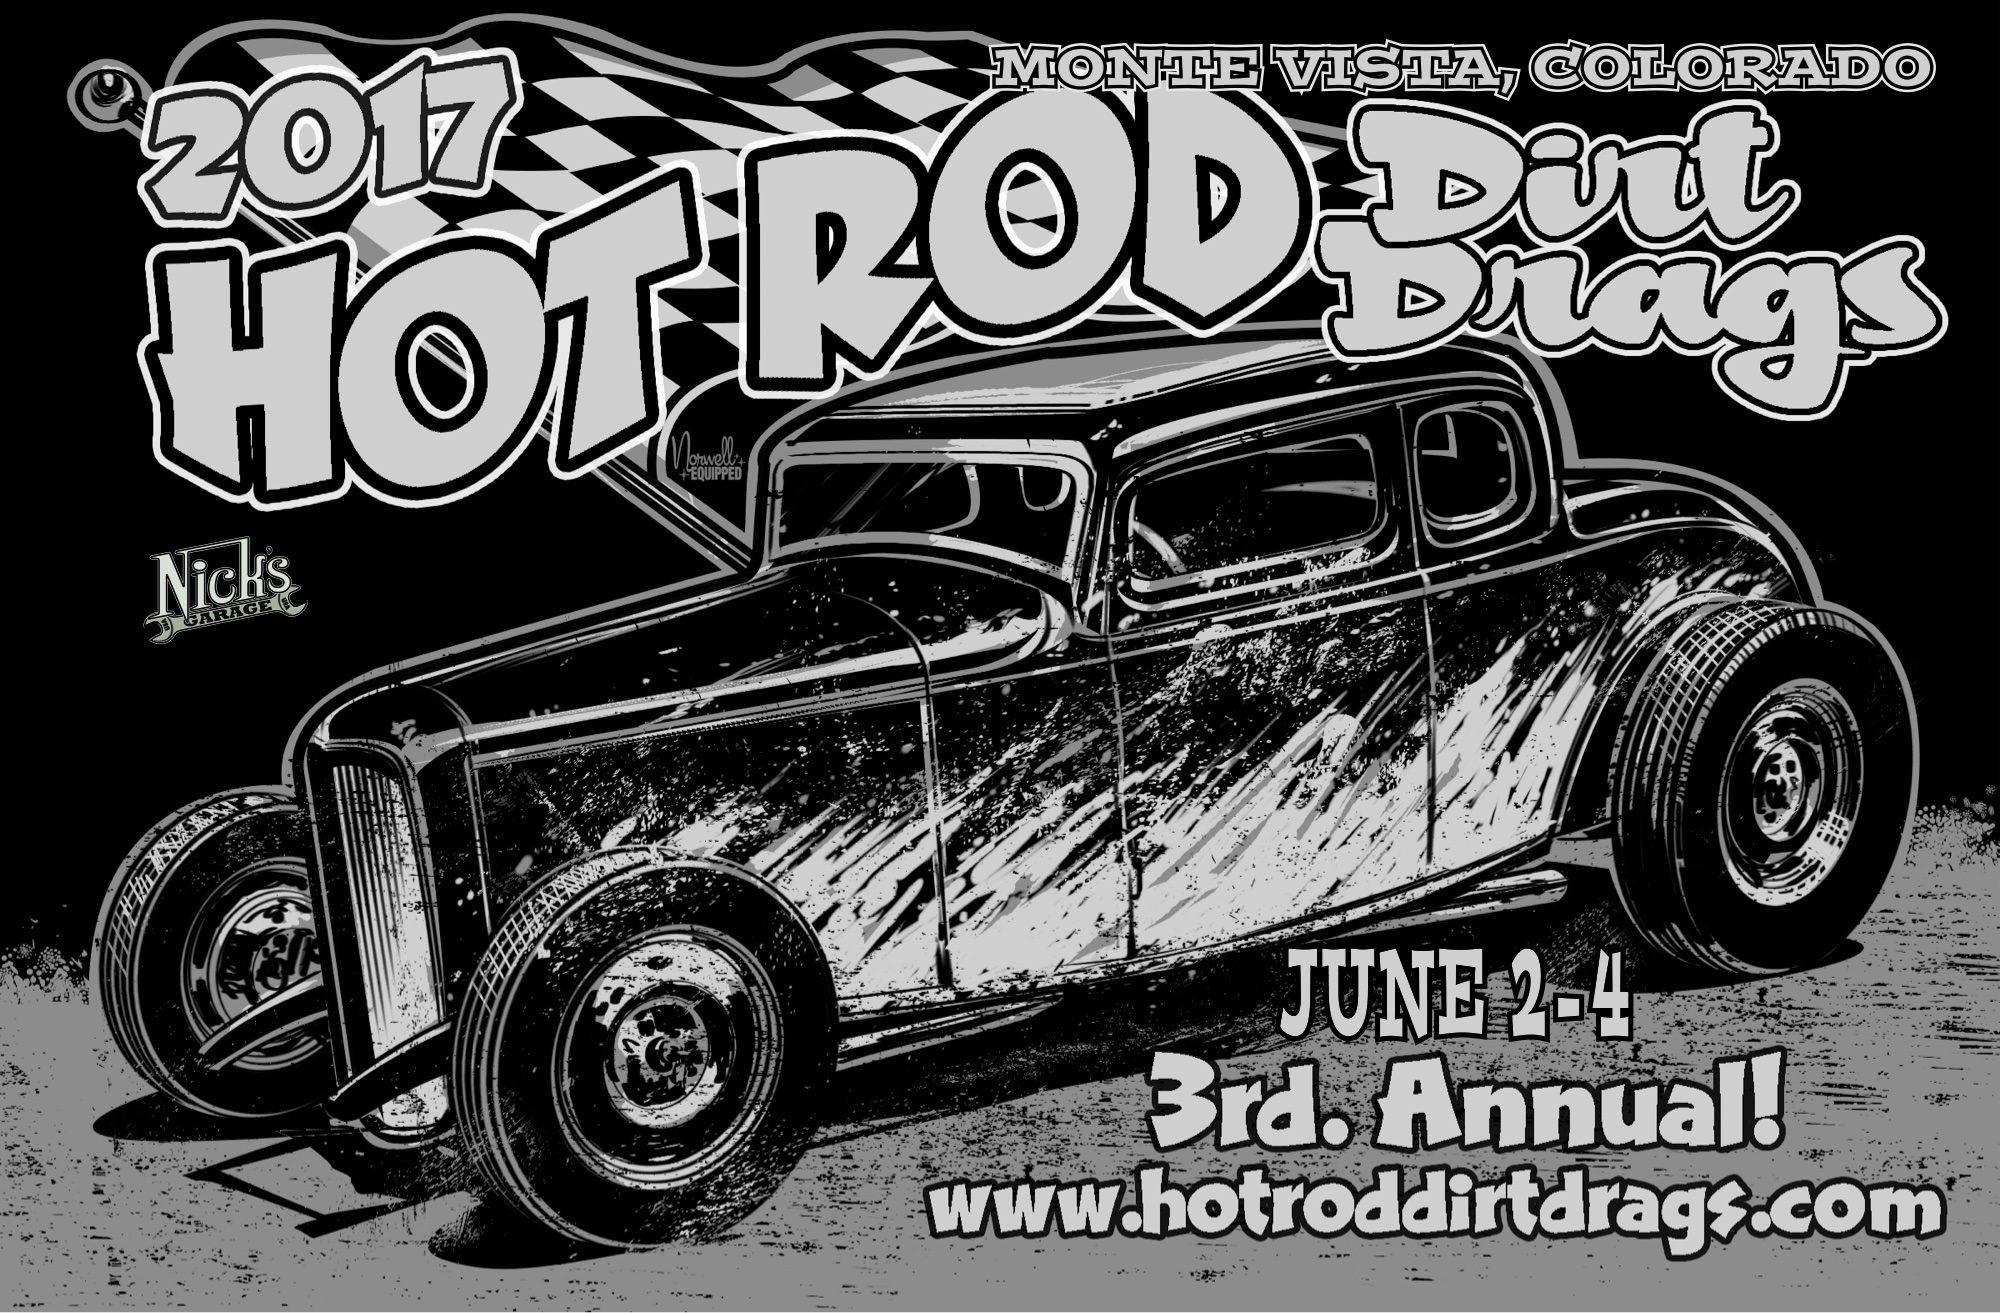 2017 Hot Rod Dirt Drags Dates